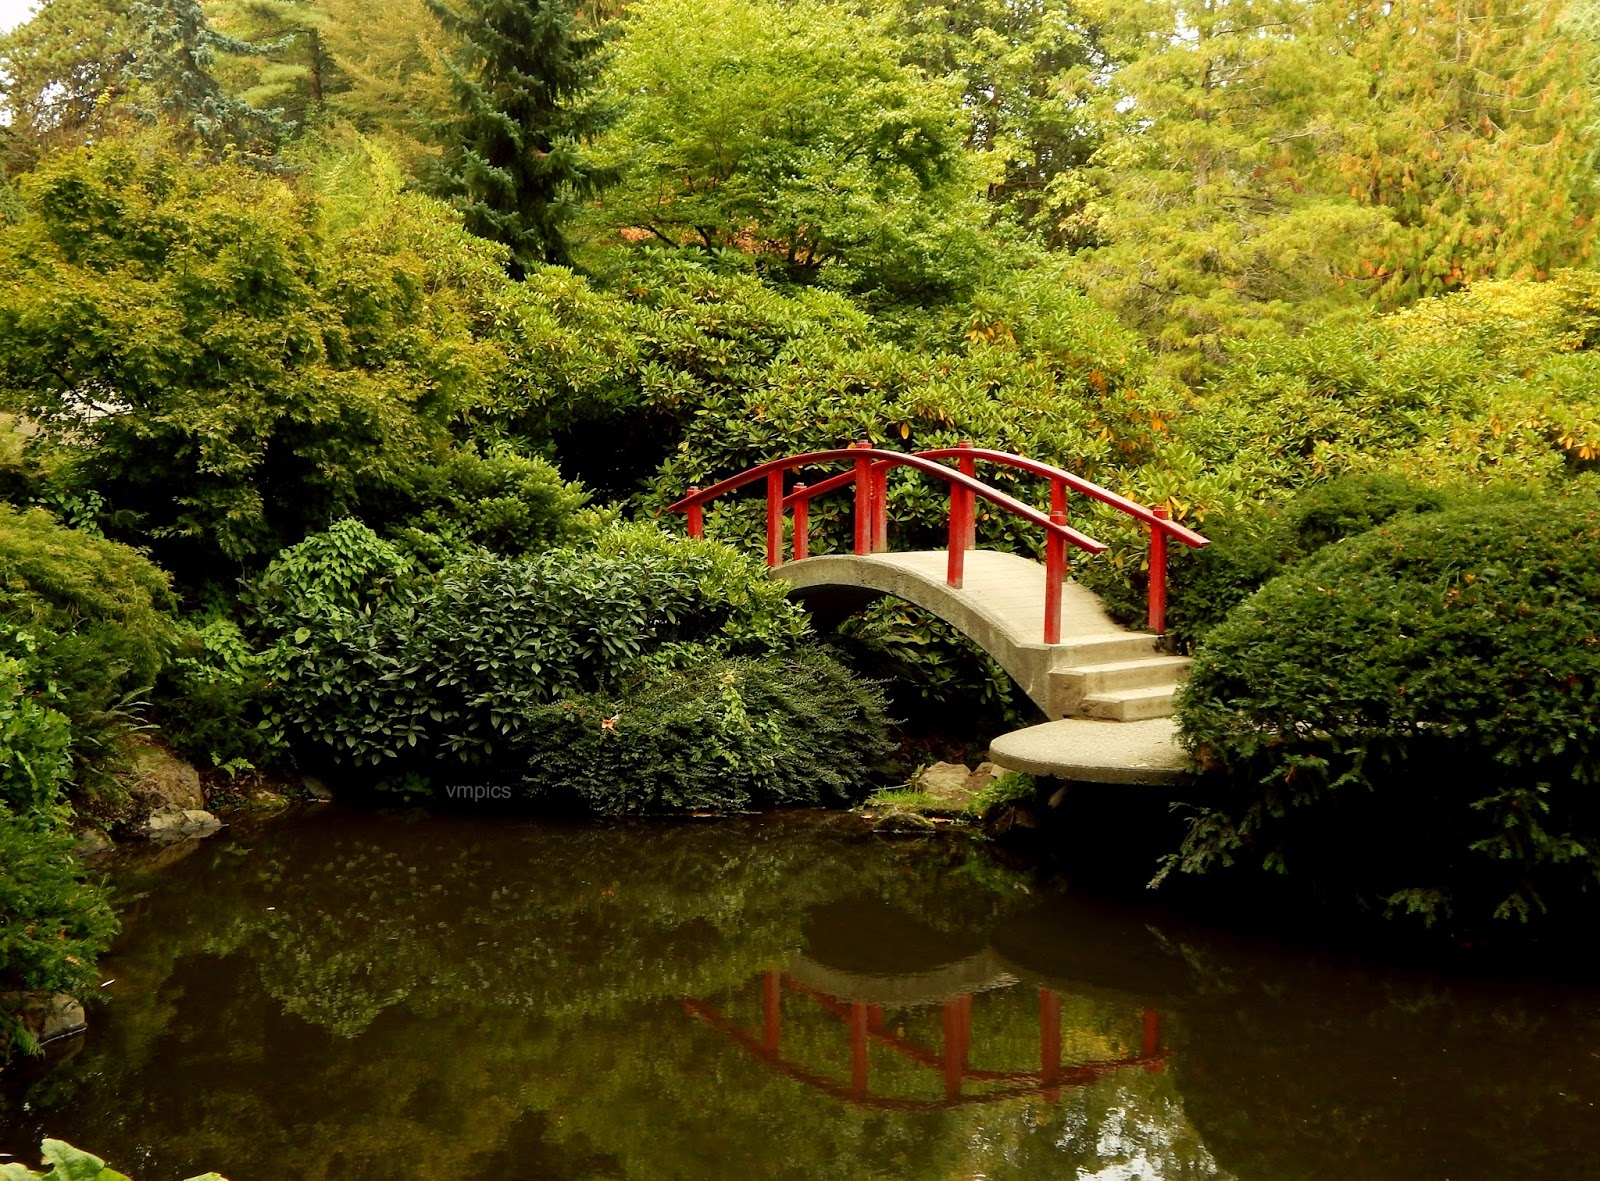 Just words hidden gem of seattle kubota japanese garden the moon bridge do you get why the other bridge is called the heart bridge bridges in japanese gardens symbolize path to paradise biocorpaavc